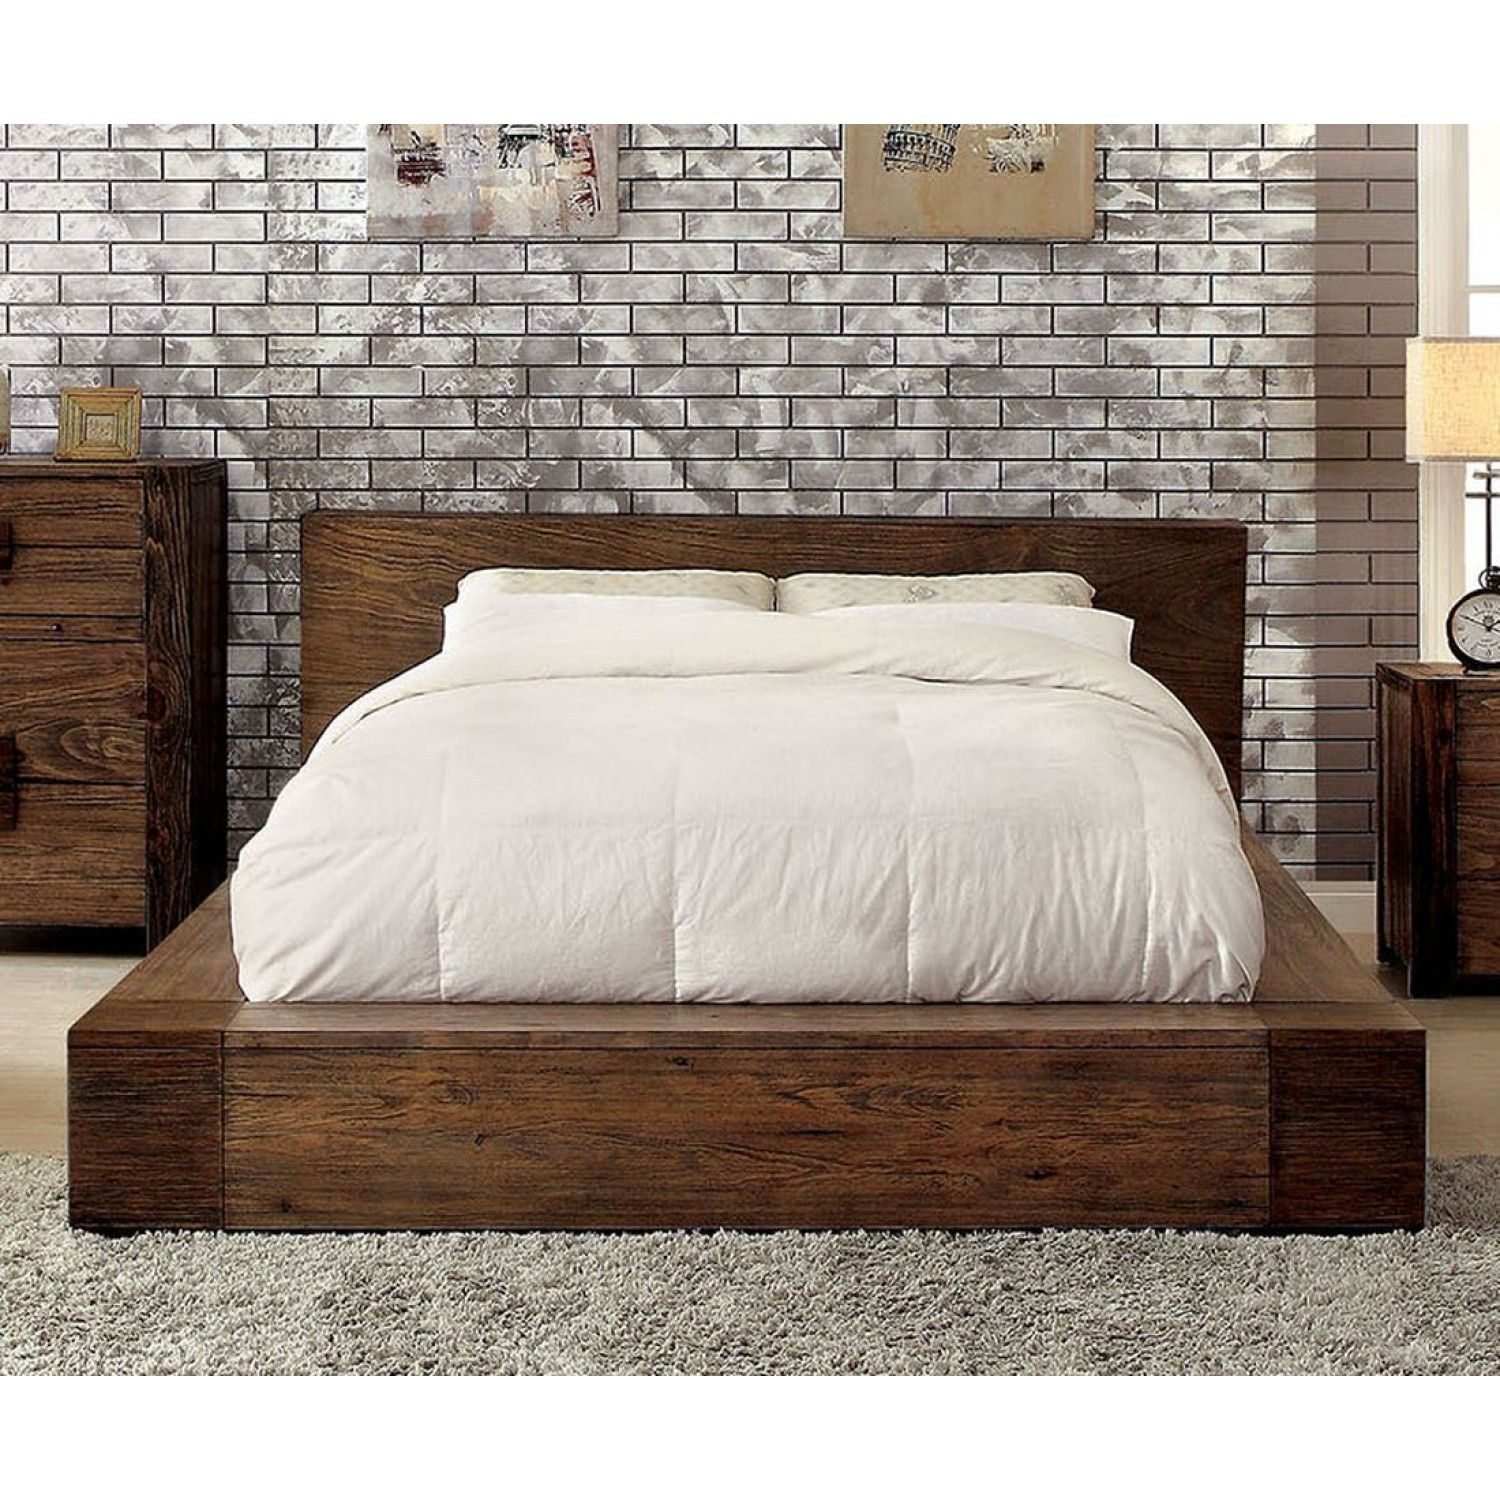 Furniture of America Janeiro Queen Bed in Rustic Natural